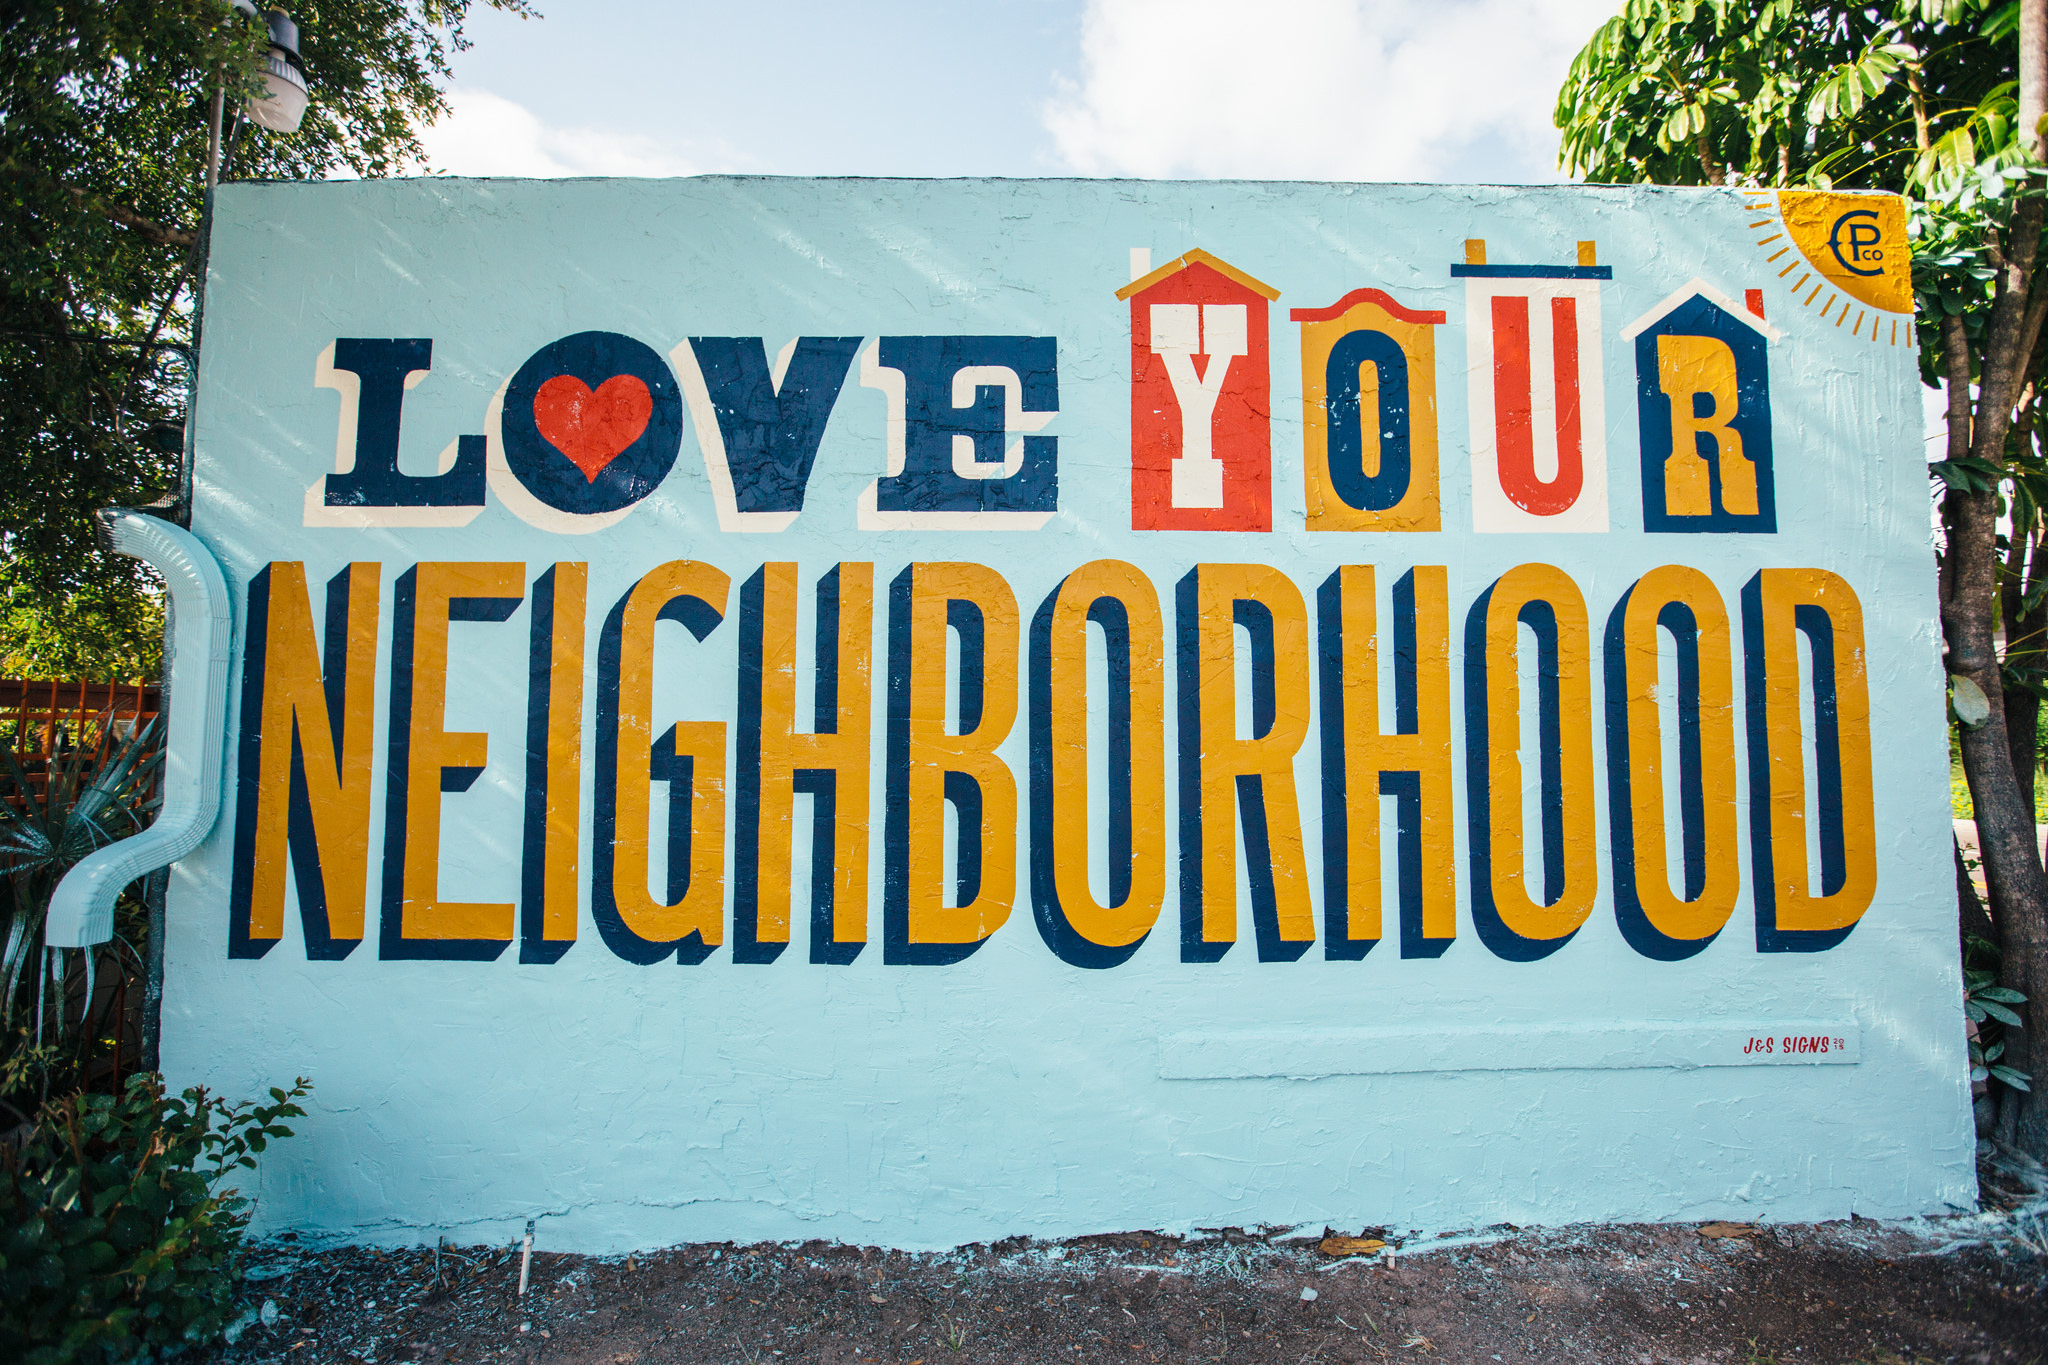 a sense of place in the community, -